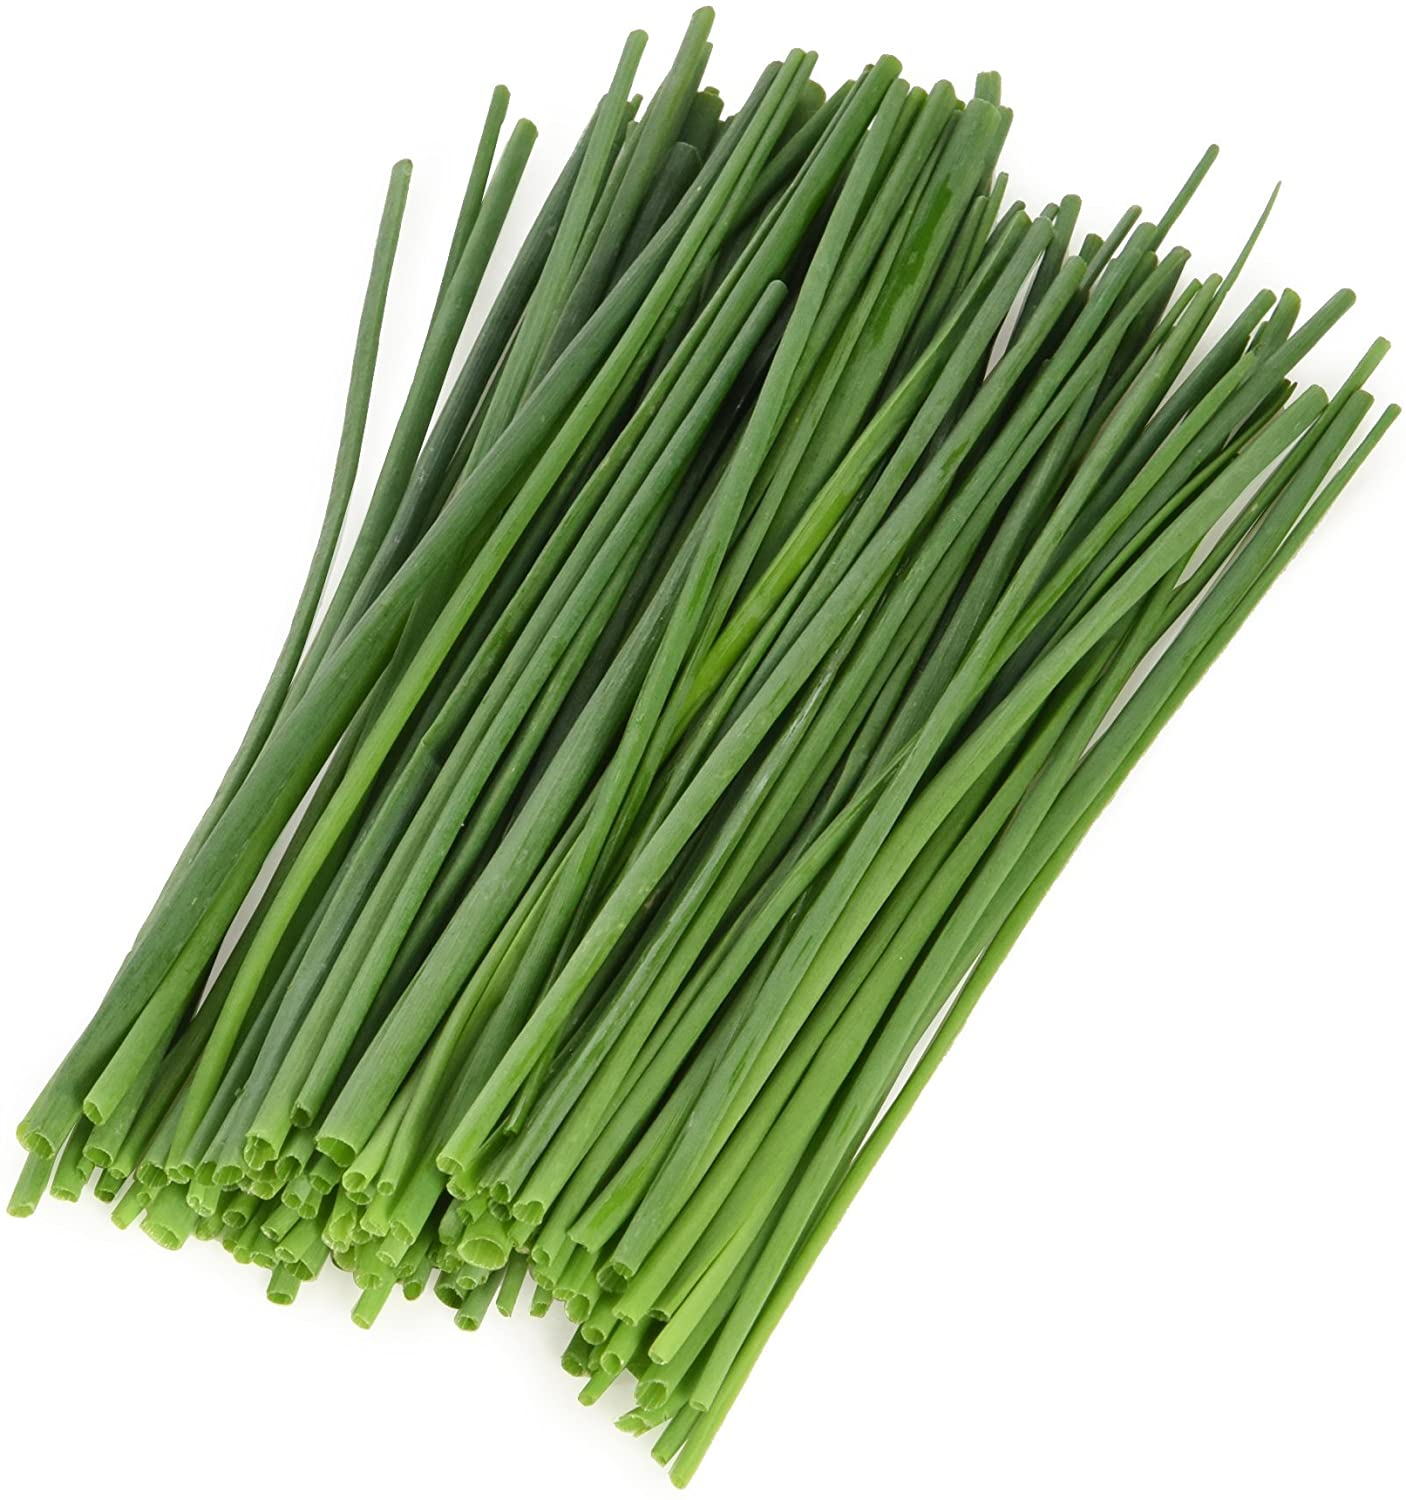 Image of Large Bundle of Fresh Chives (50g)